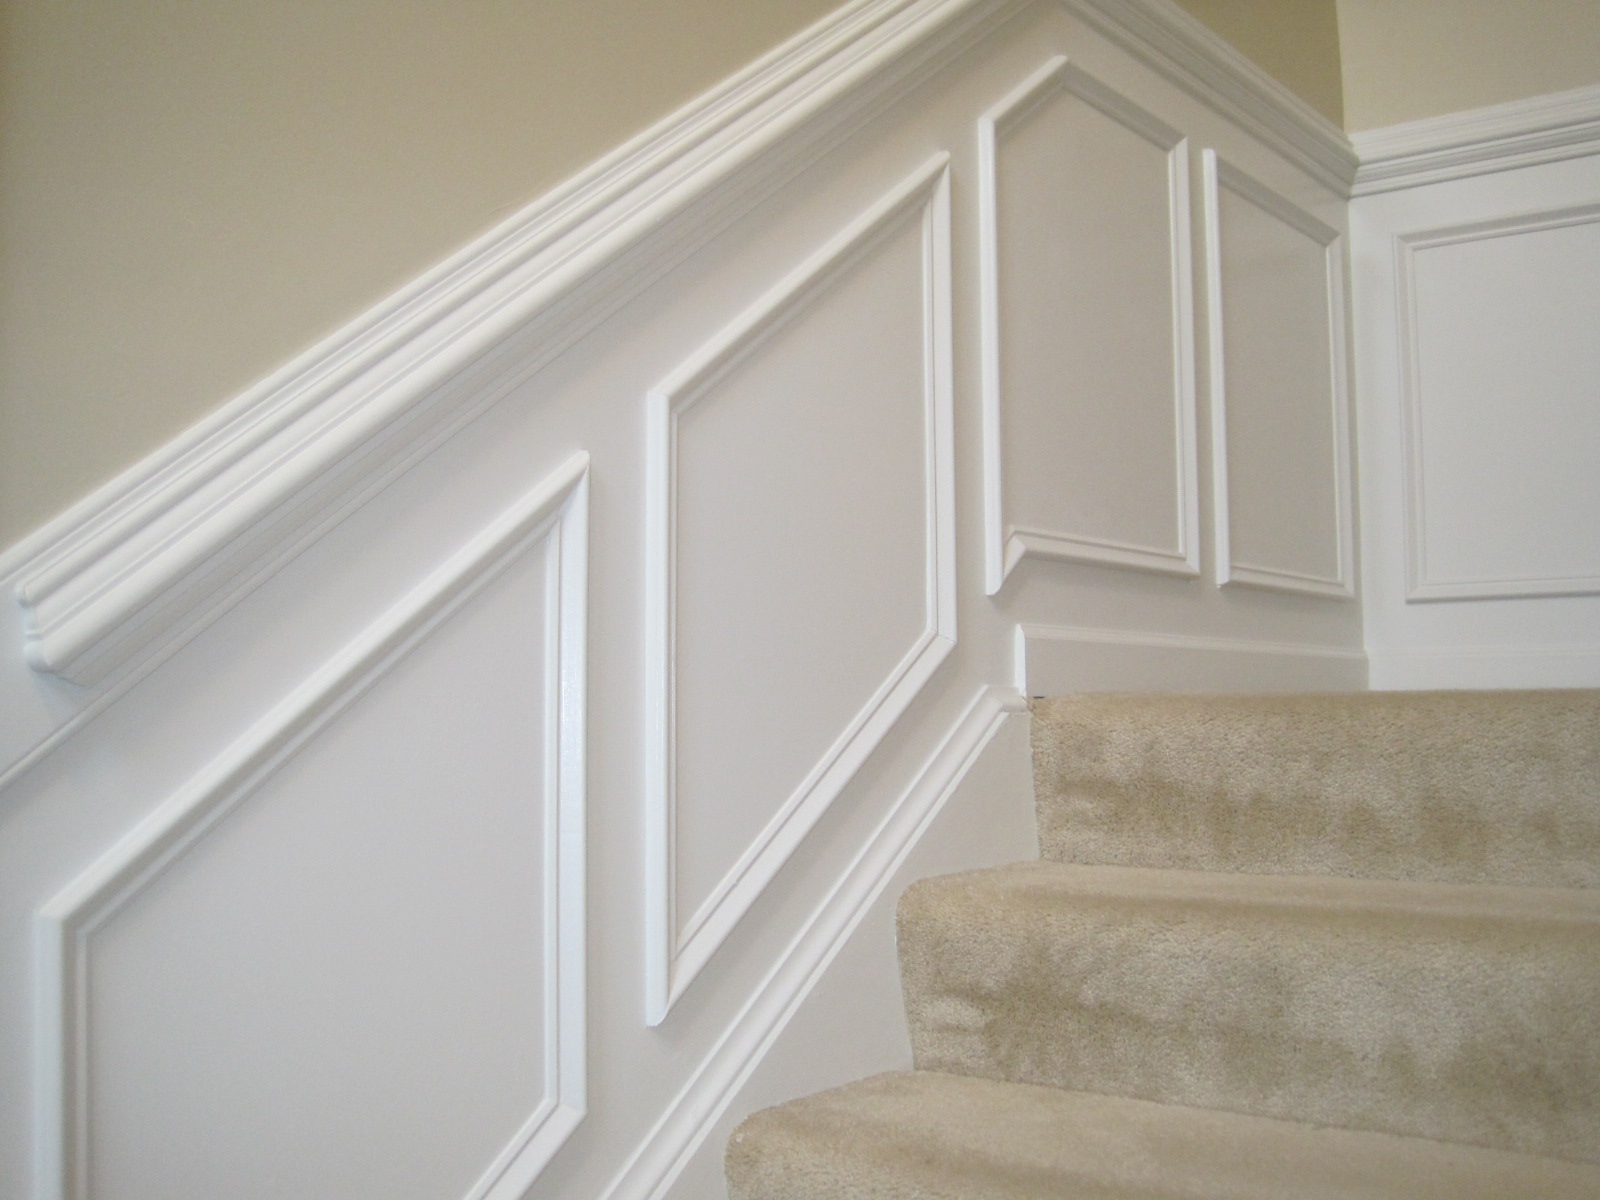 Elegant White Installing Wainscoting Correctly